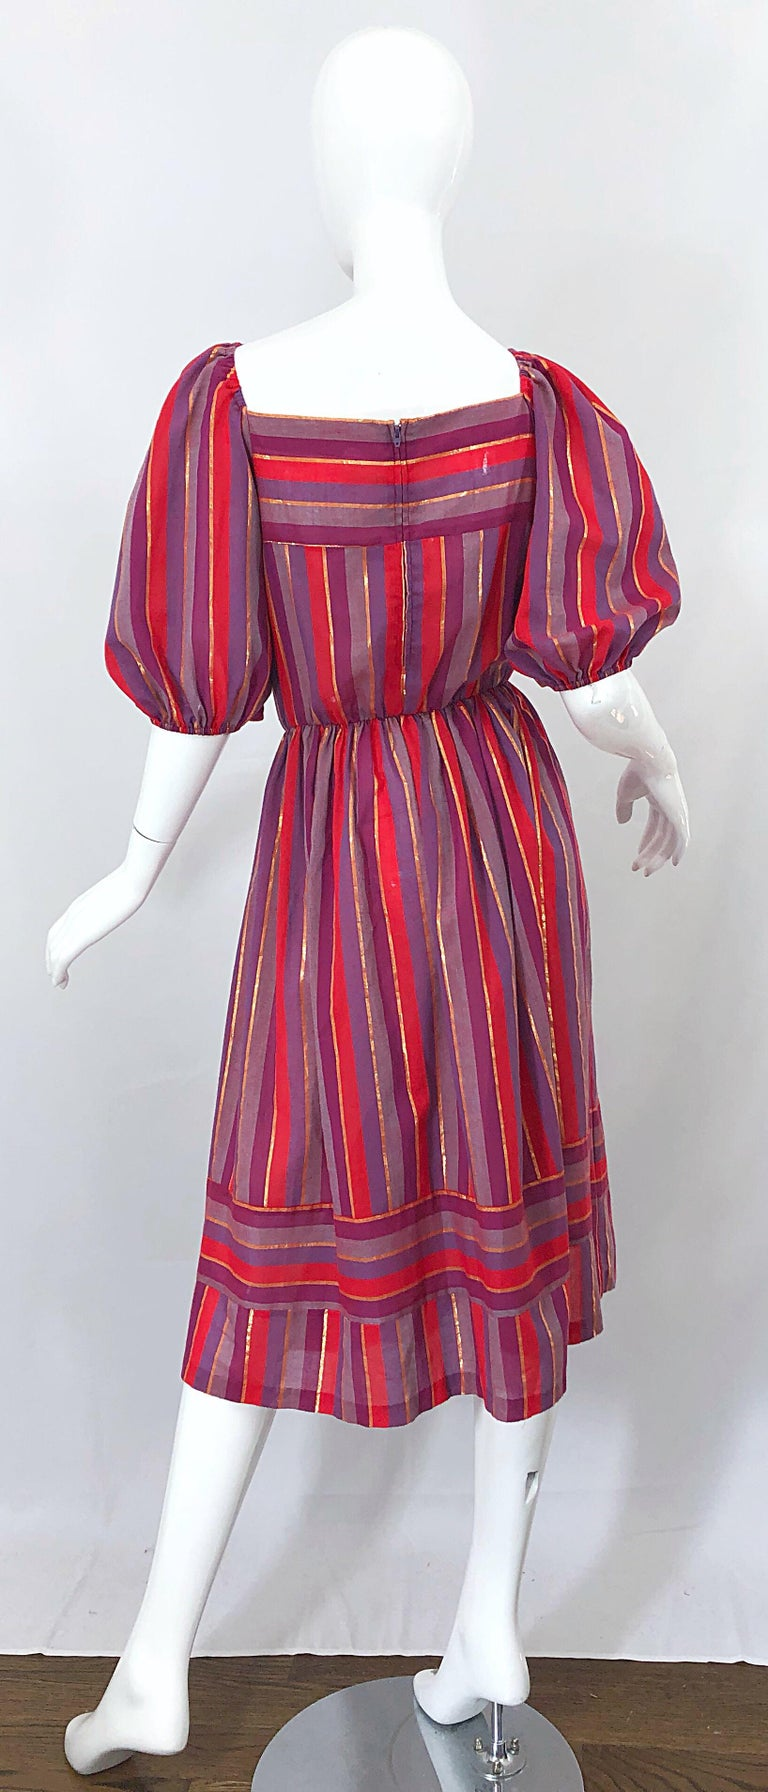 Brown 1970s Boho Chic Red + Purple + Gold Striped Cotton Voile 70s Vintage Dress For Sale